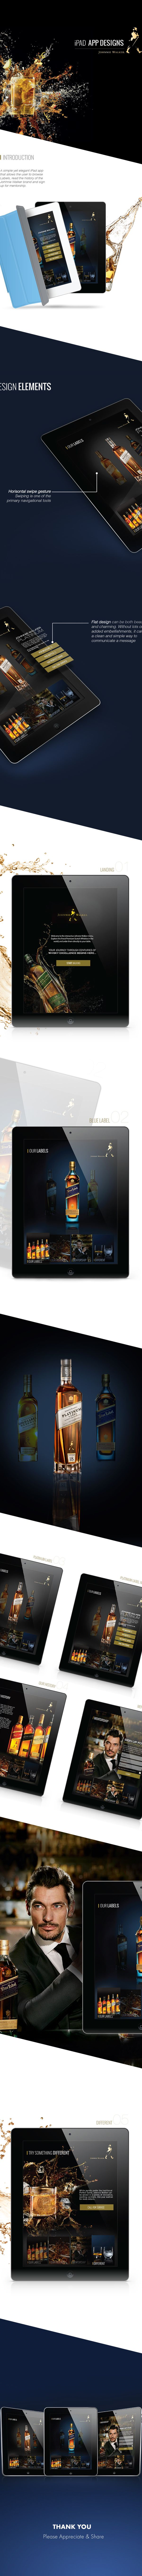 Johnnie Walker iPad App Design Concept on Behance